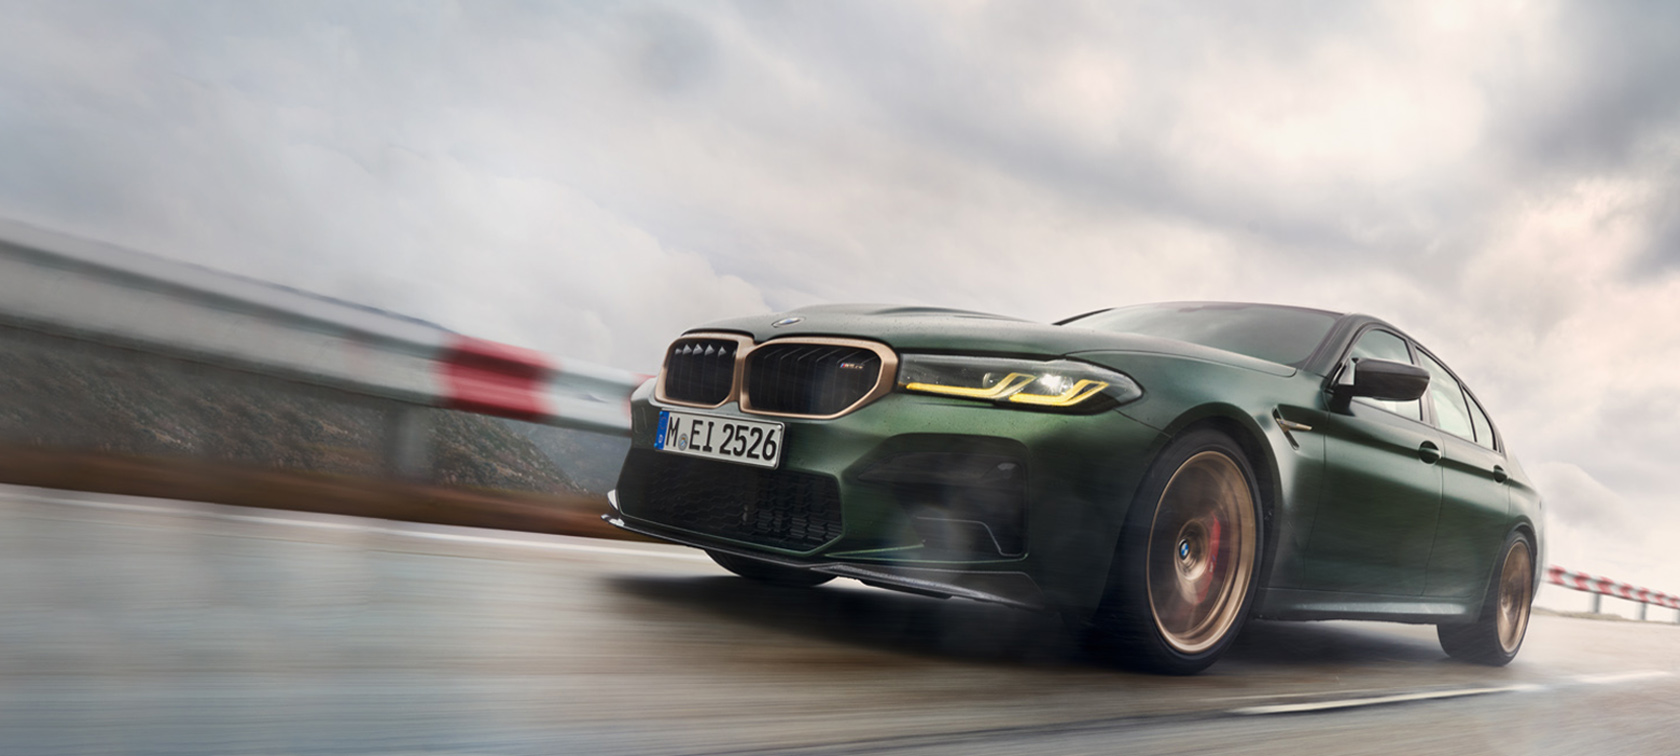 BMW M5 CS F90 2021 Frozen Deep Green metallic driekwart vooraanzicht